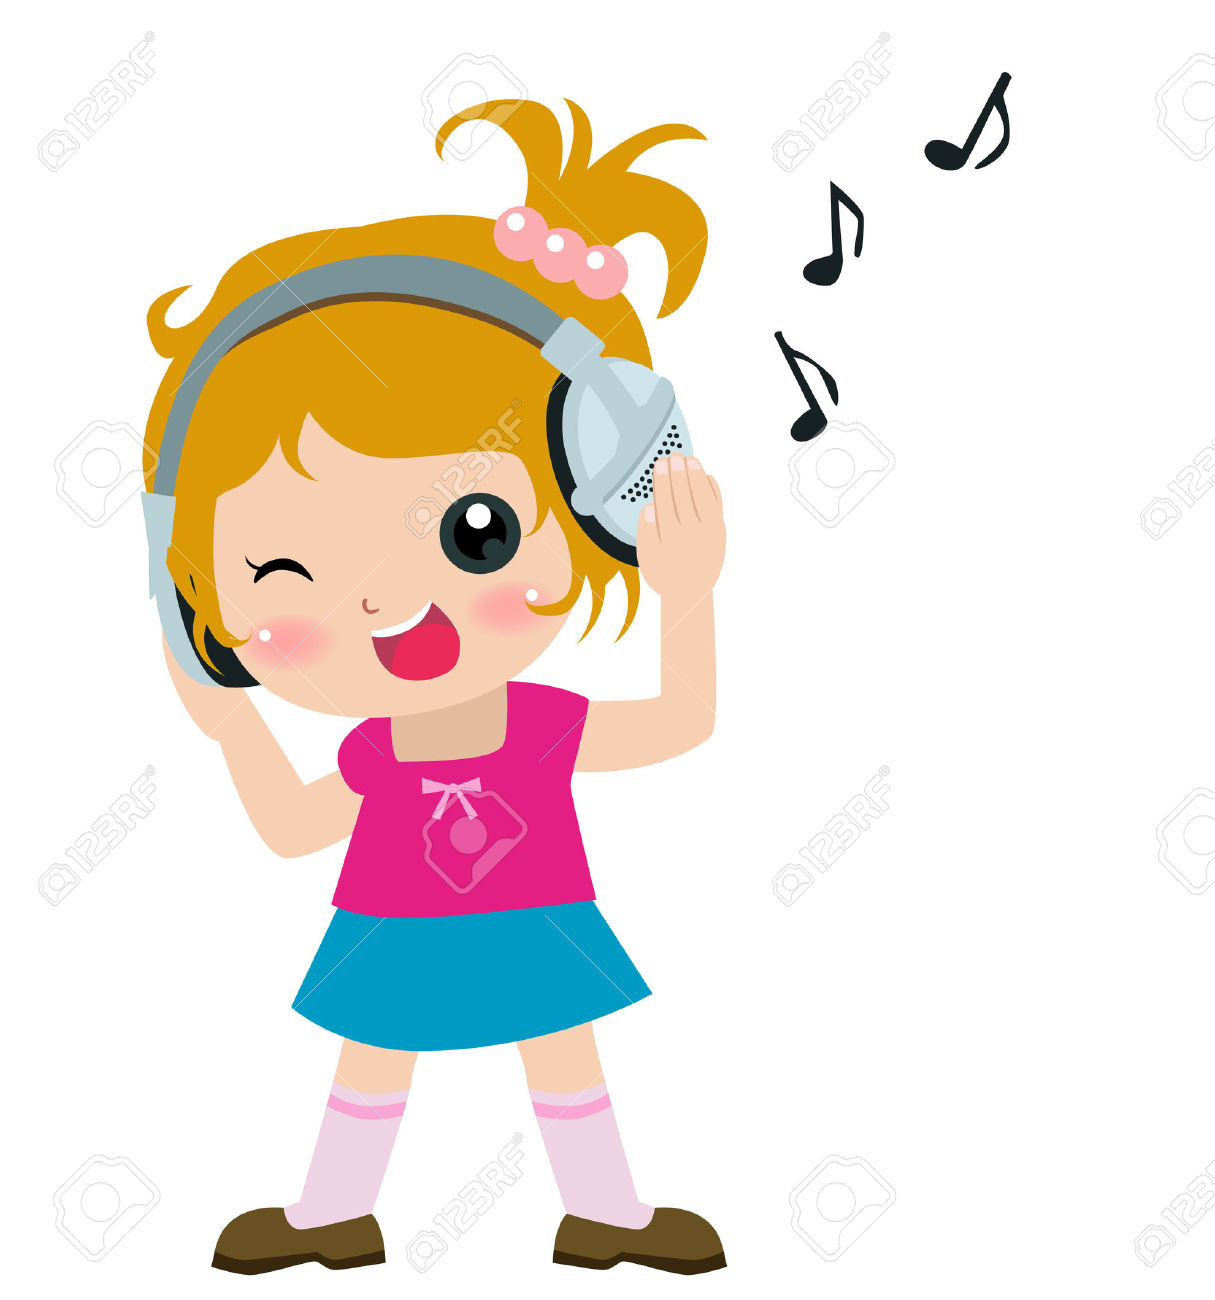 Illustration Of A Cute Girl Listening Music Royalty Free Cliparts.